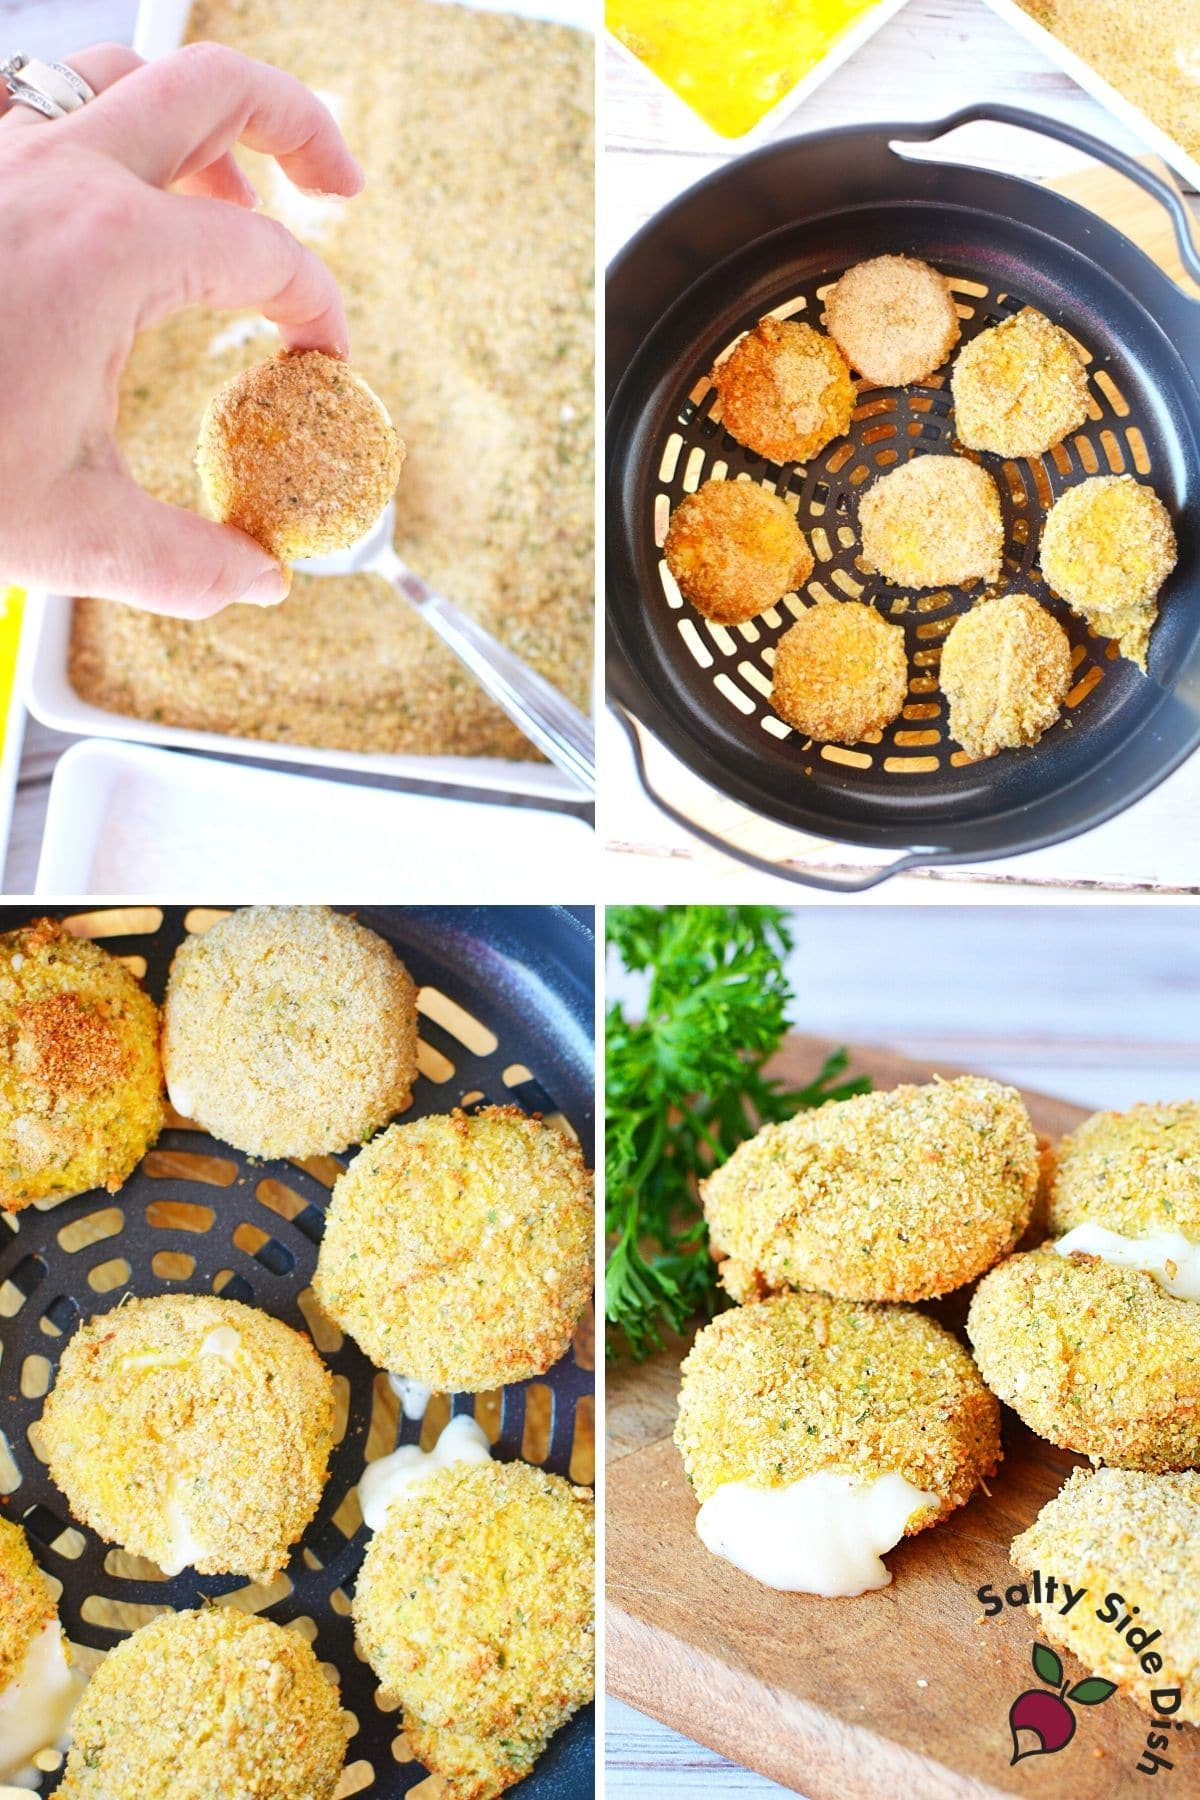 placing cheese into air fryer basket